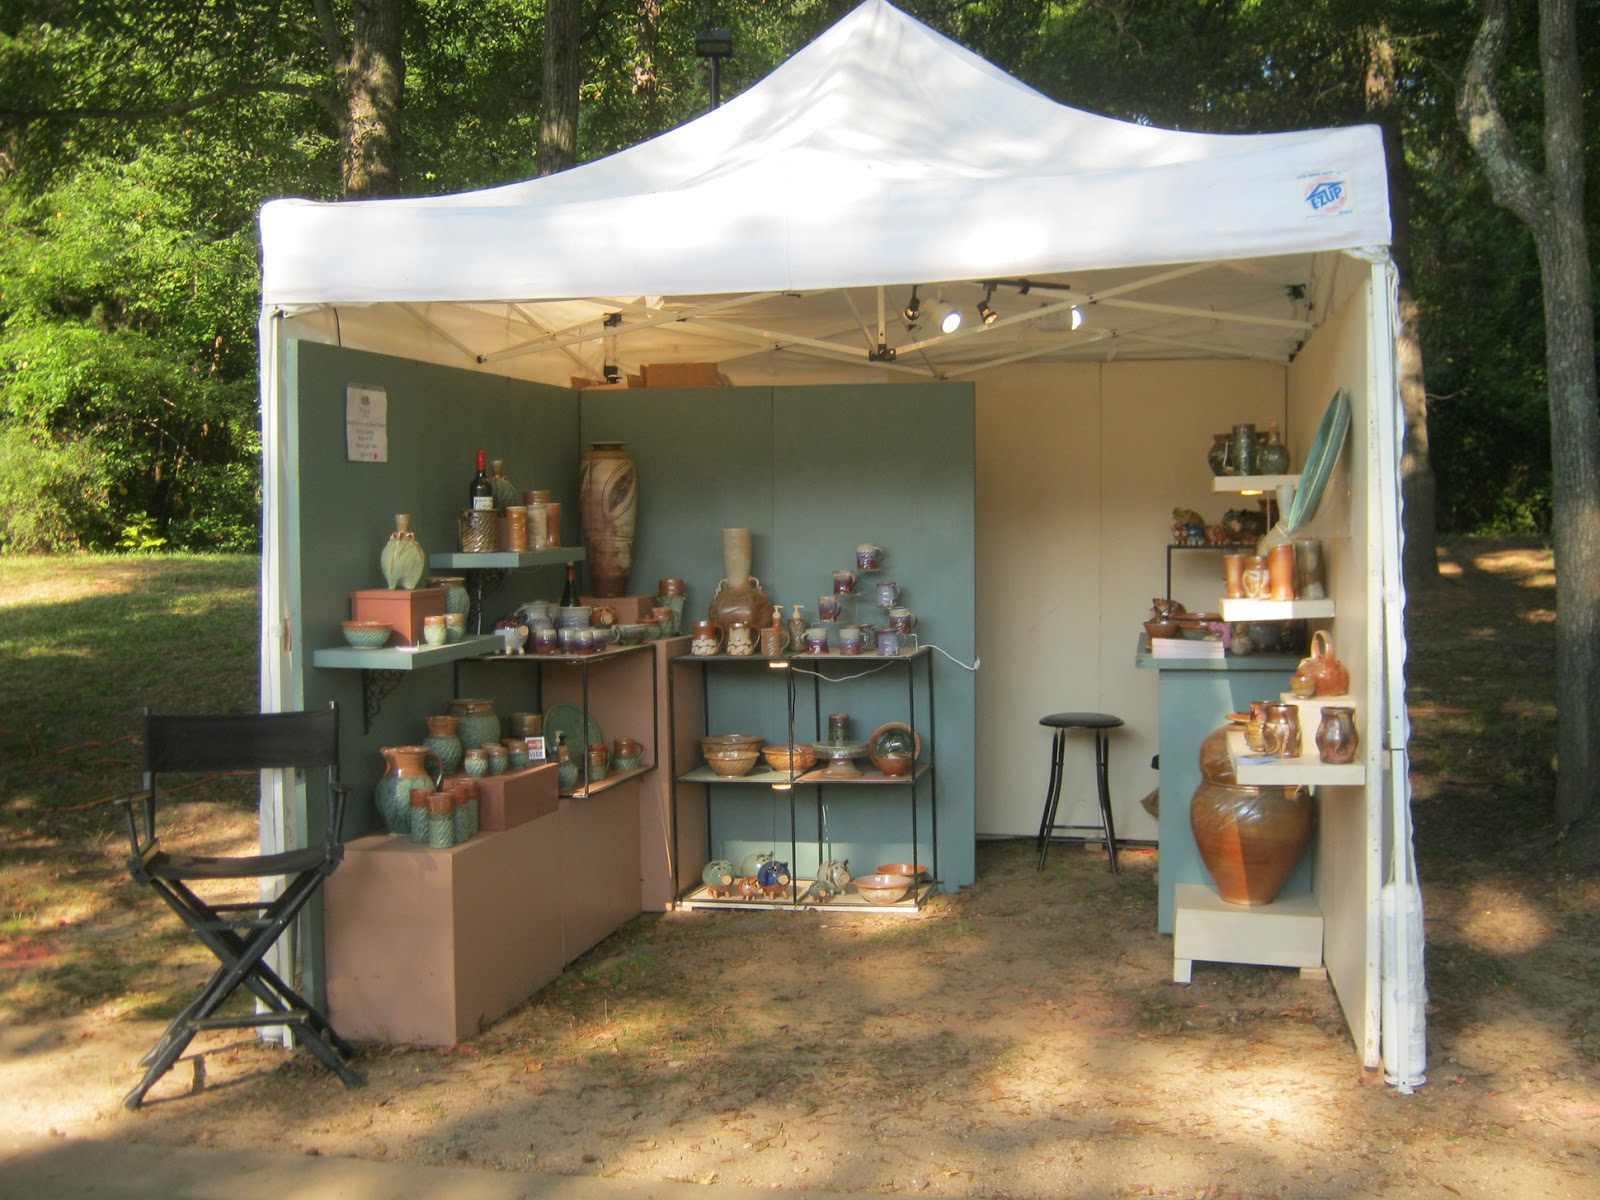 Exhibition Booth Outdoor : Jeff brown pottery the outdoor booth